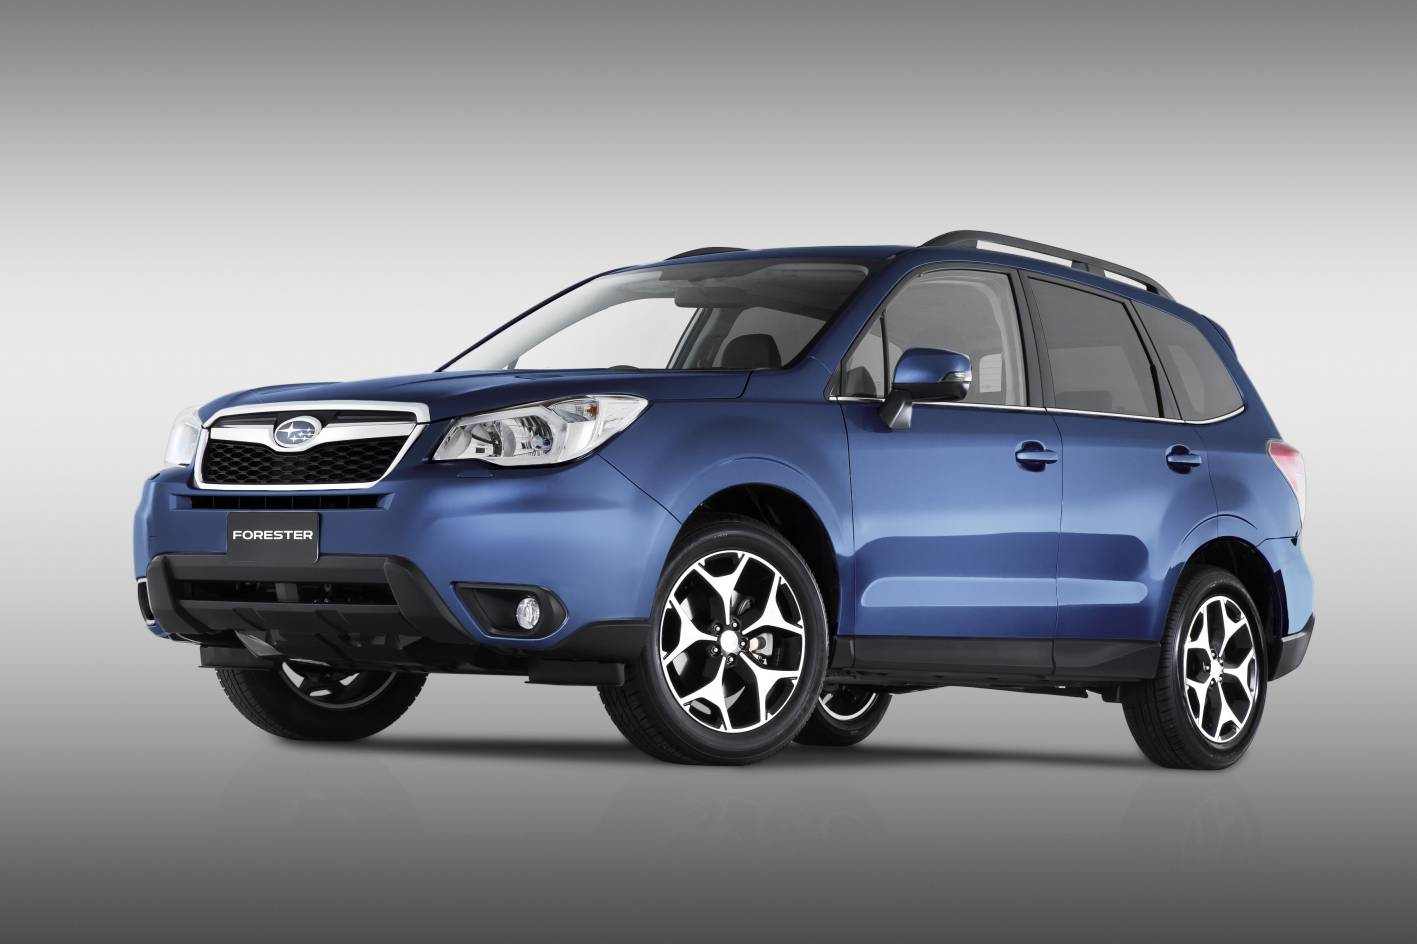 News five star ancap safety for subaru forester volvo for Star motor cars volvo